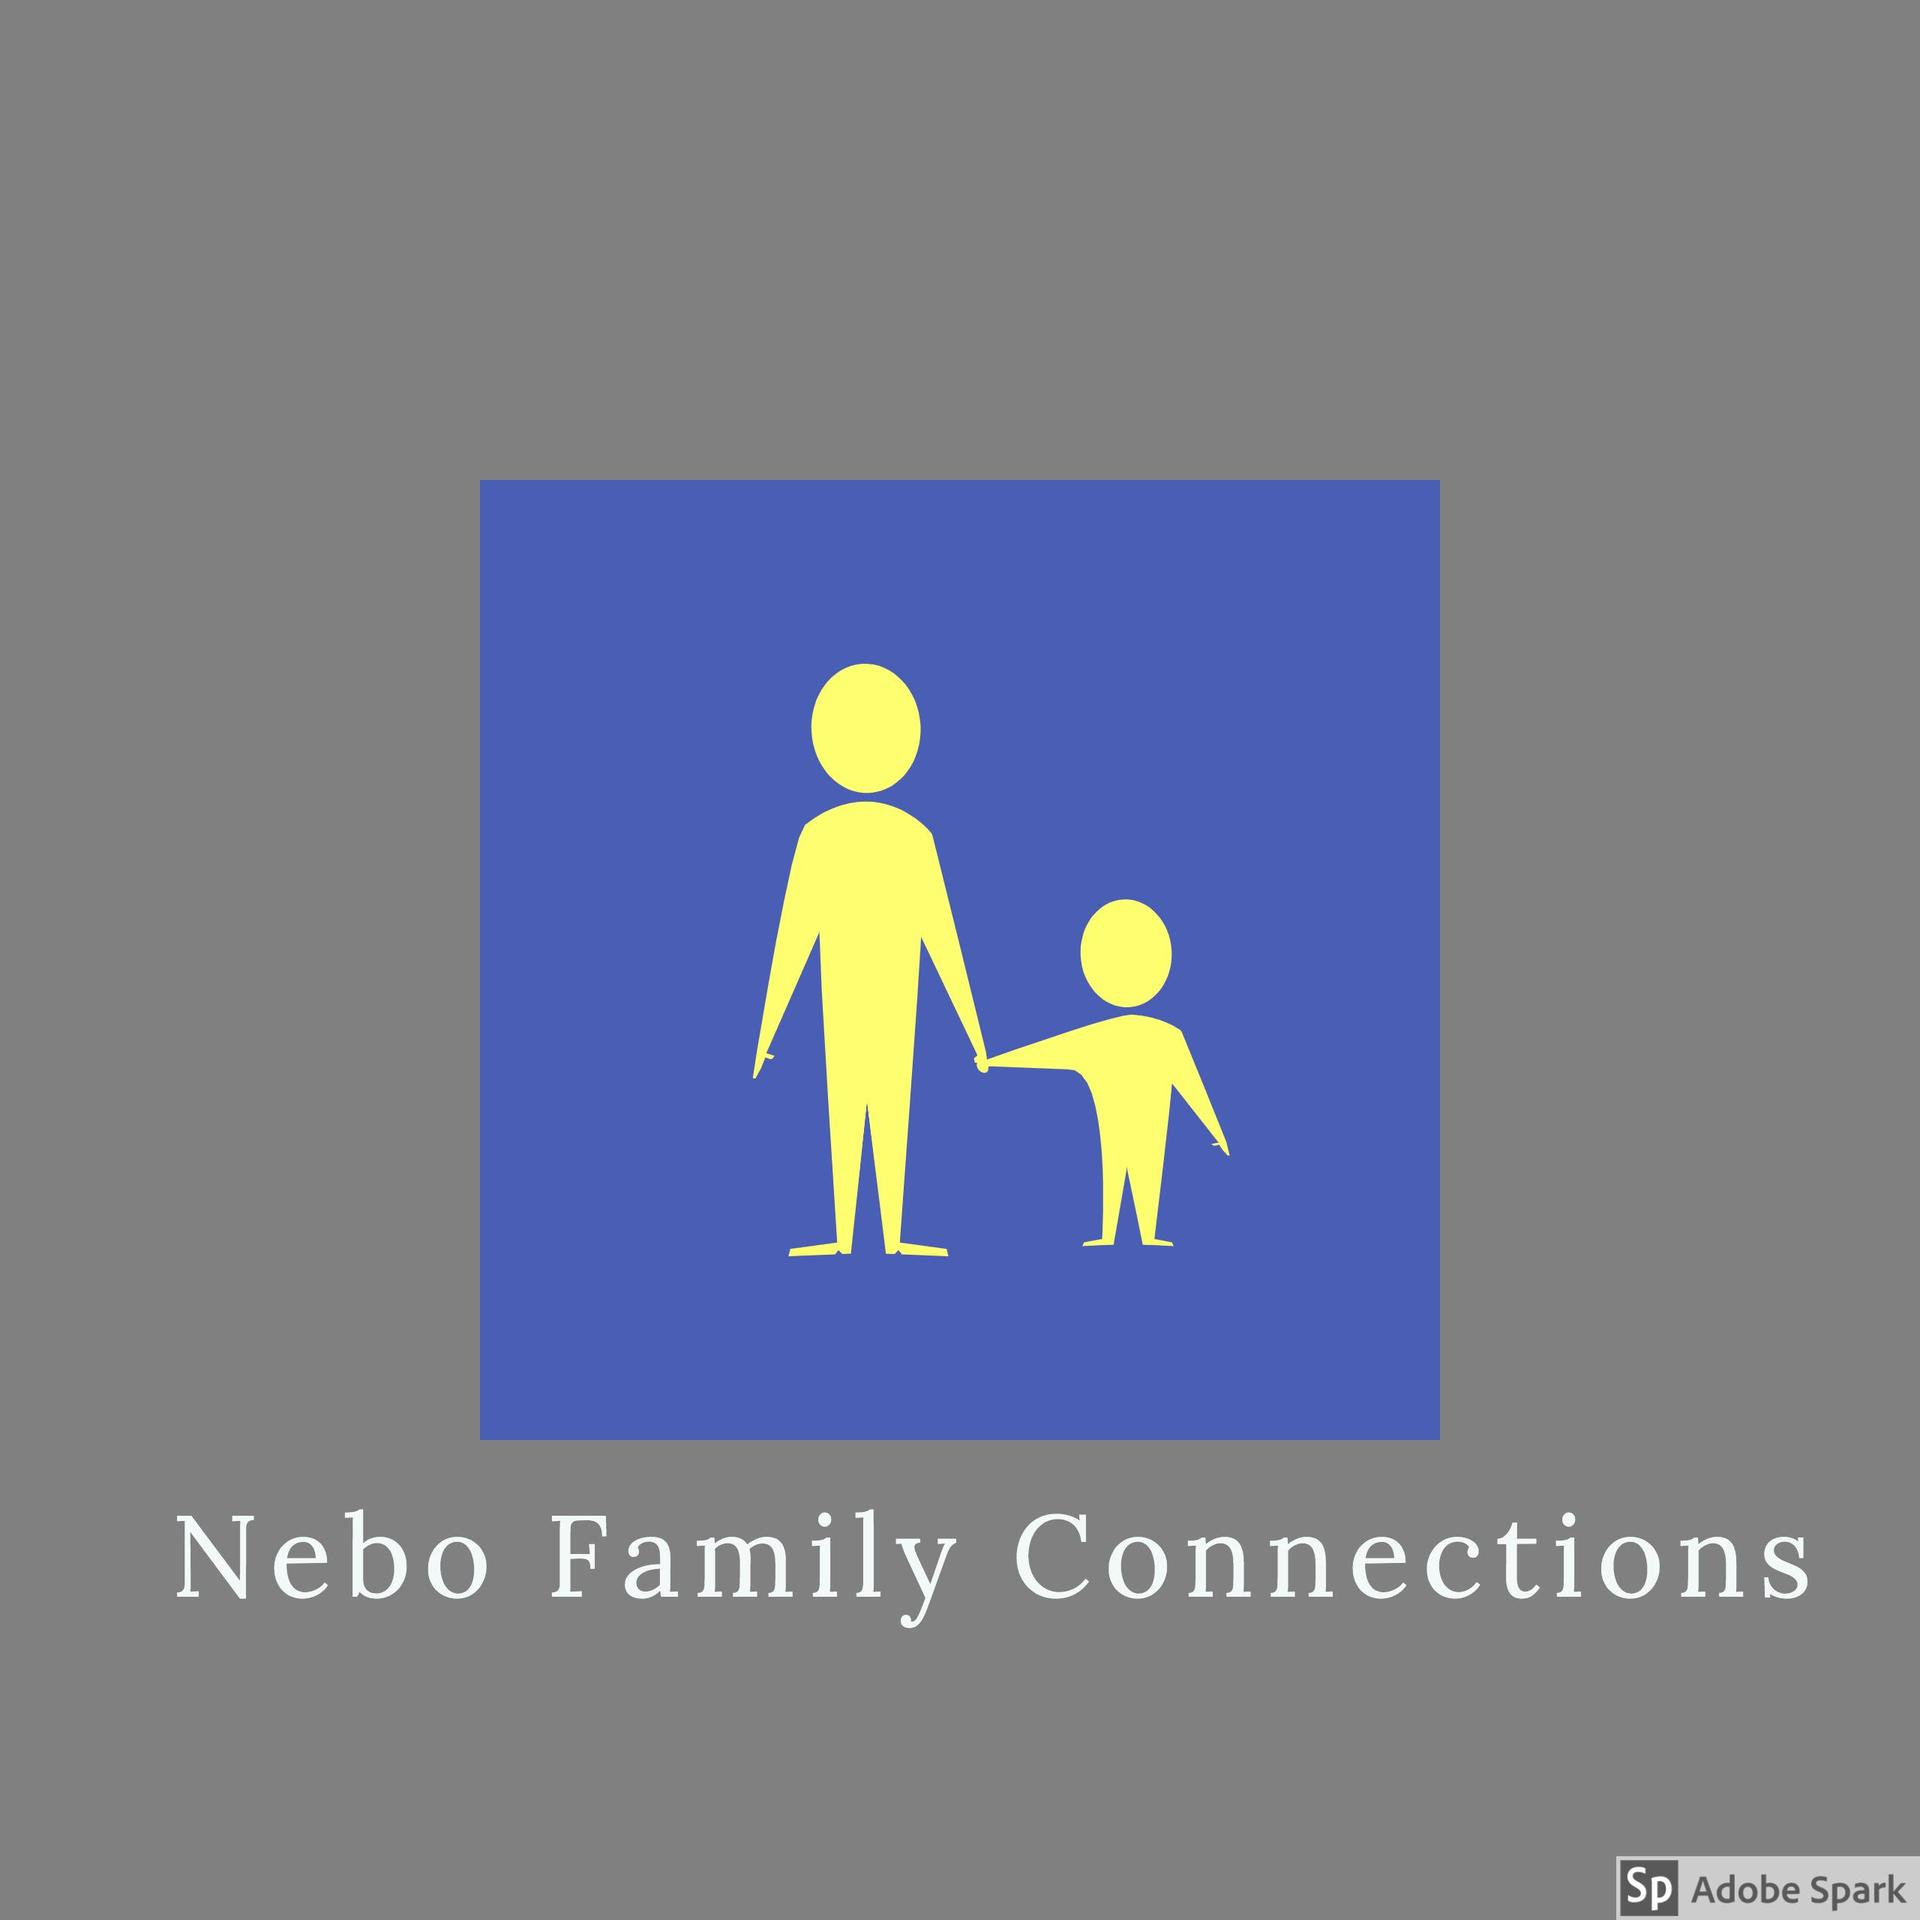 adult and child holding hands icon Nebo Family Connections